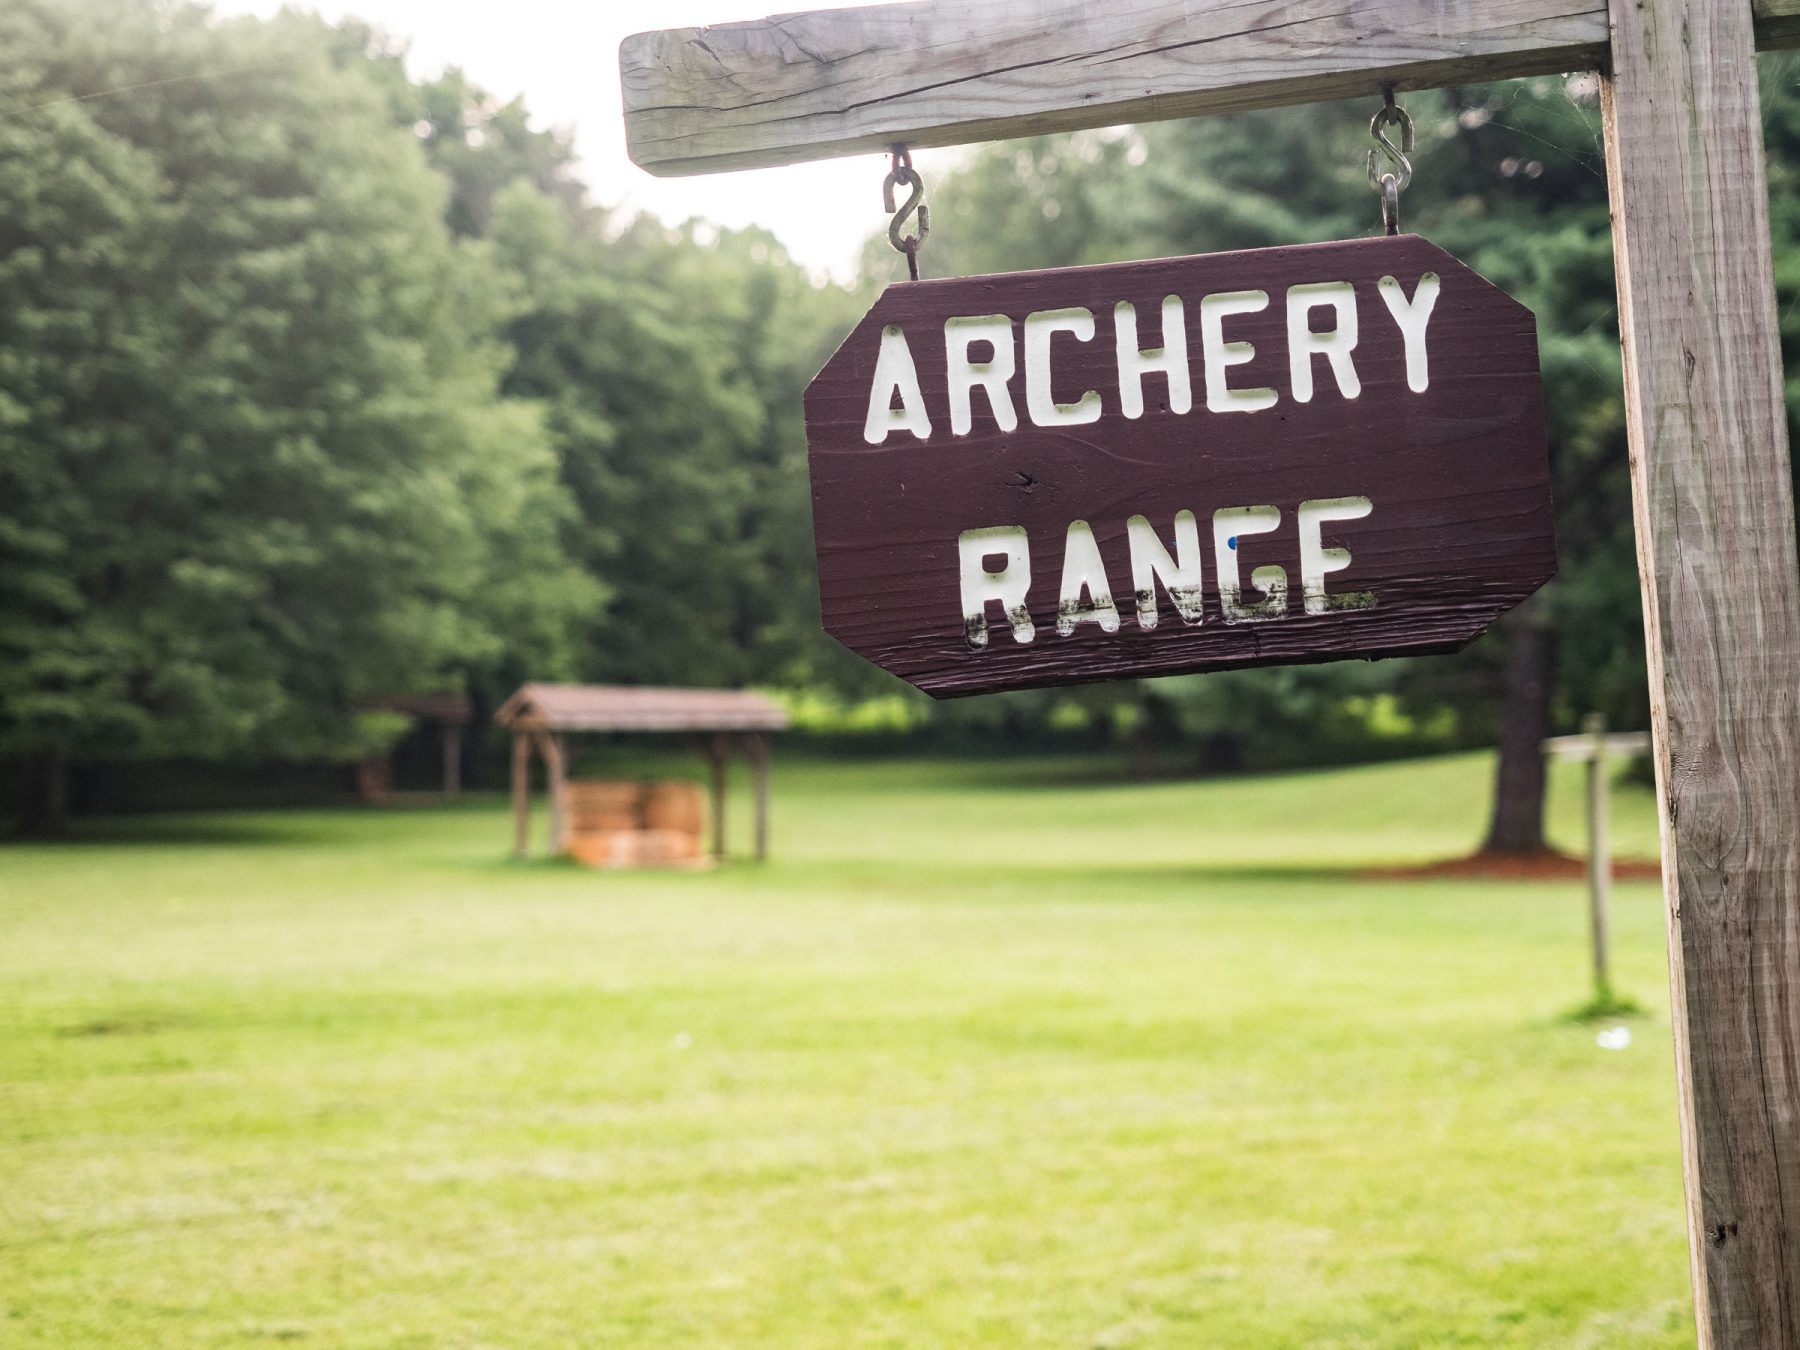 South Germantown Driving Range - Archery